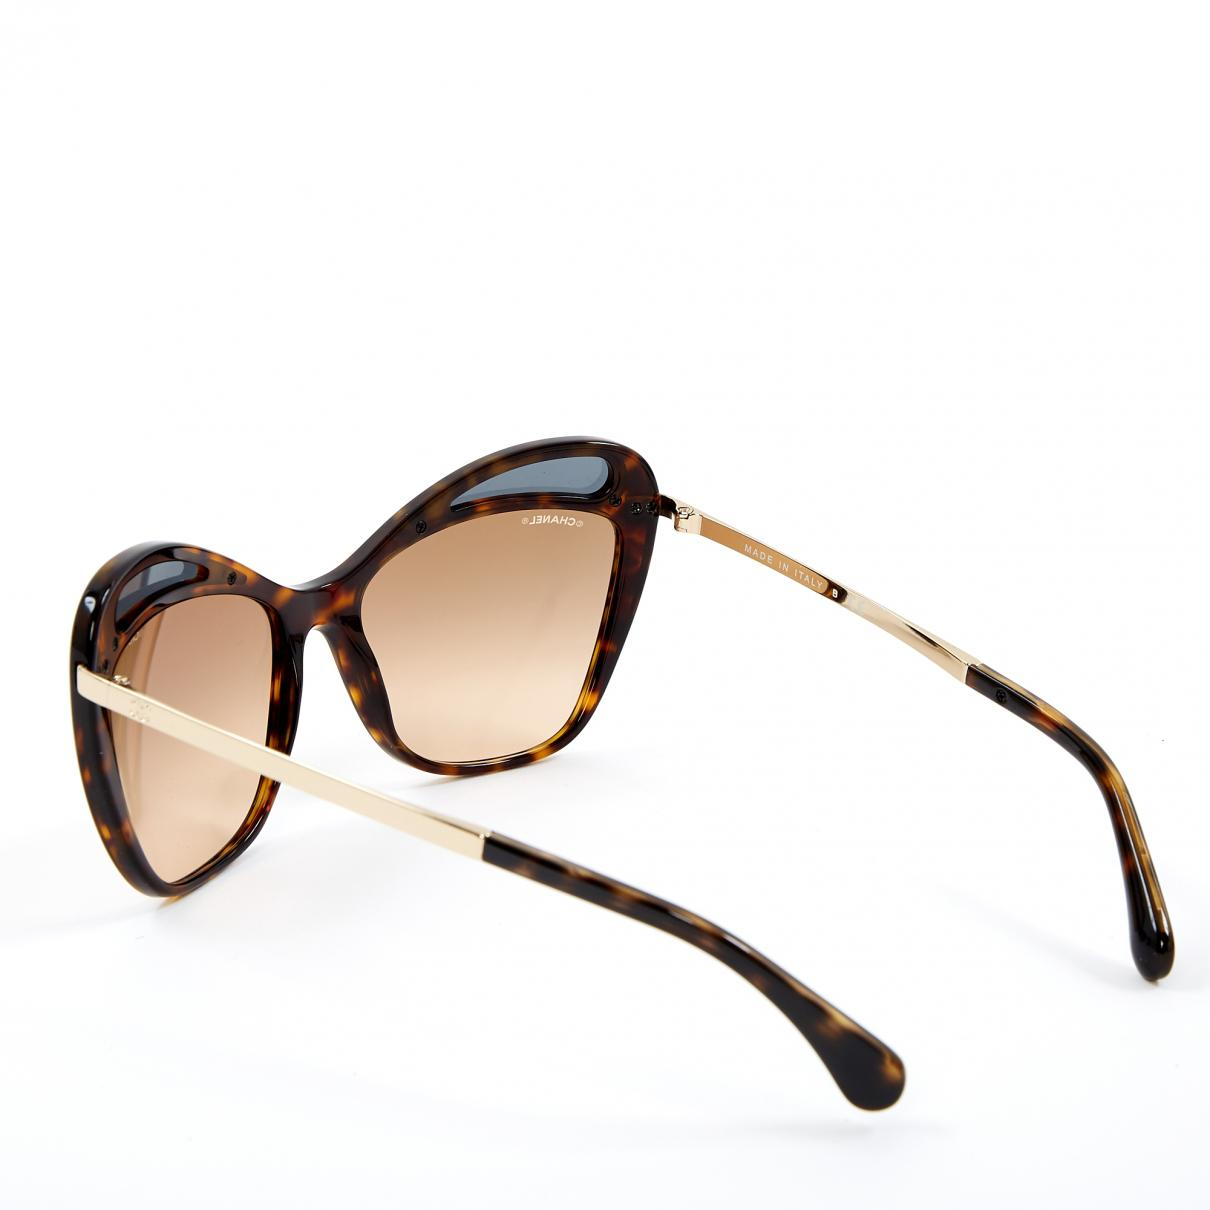 324104cacfe Chanel Pre-owned Oversized Sunglasses in Brown - Lyst